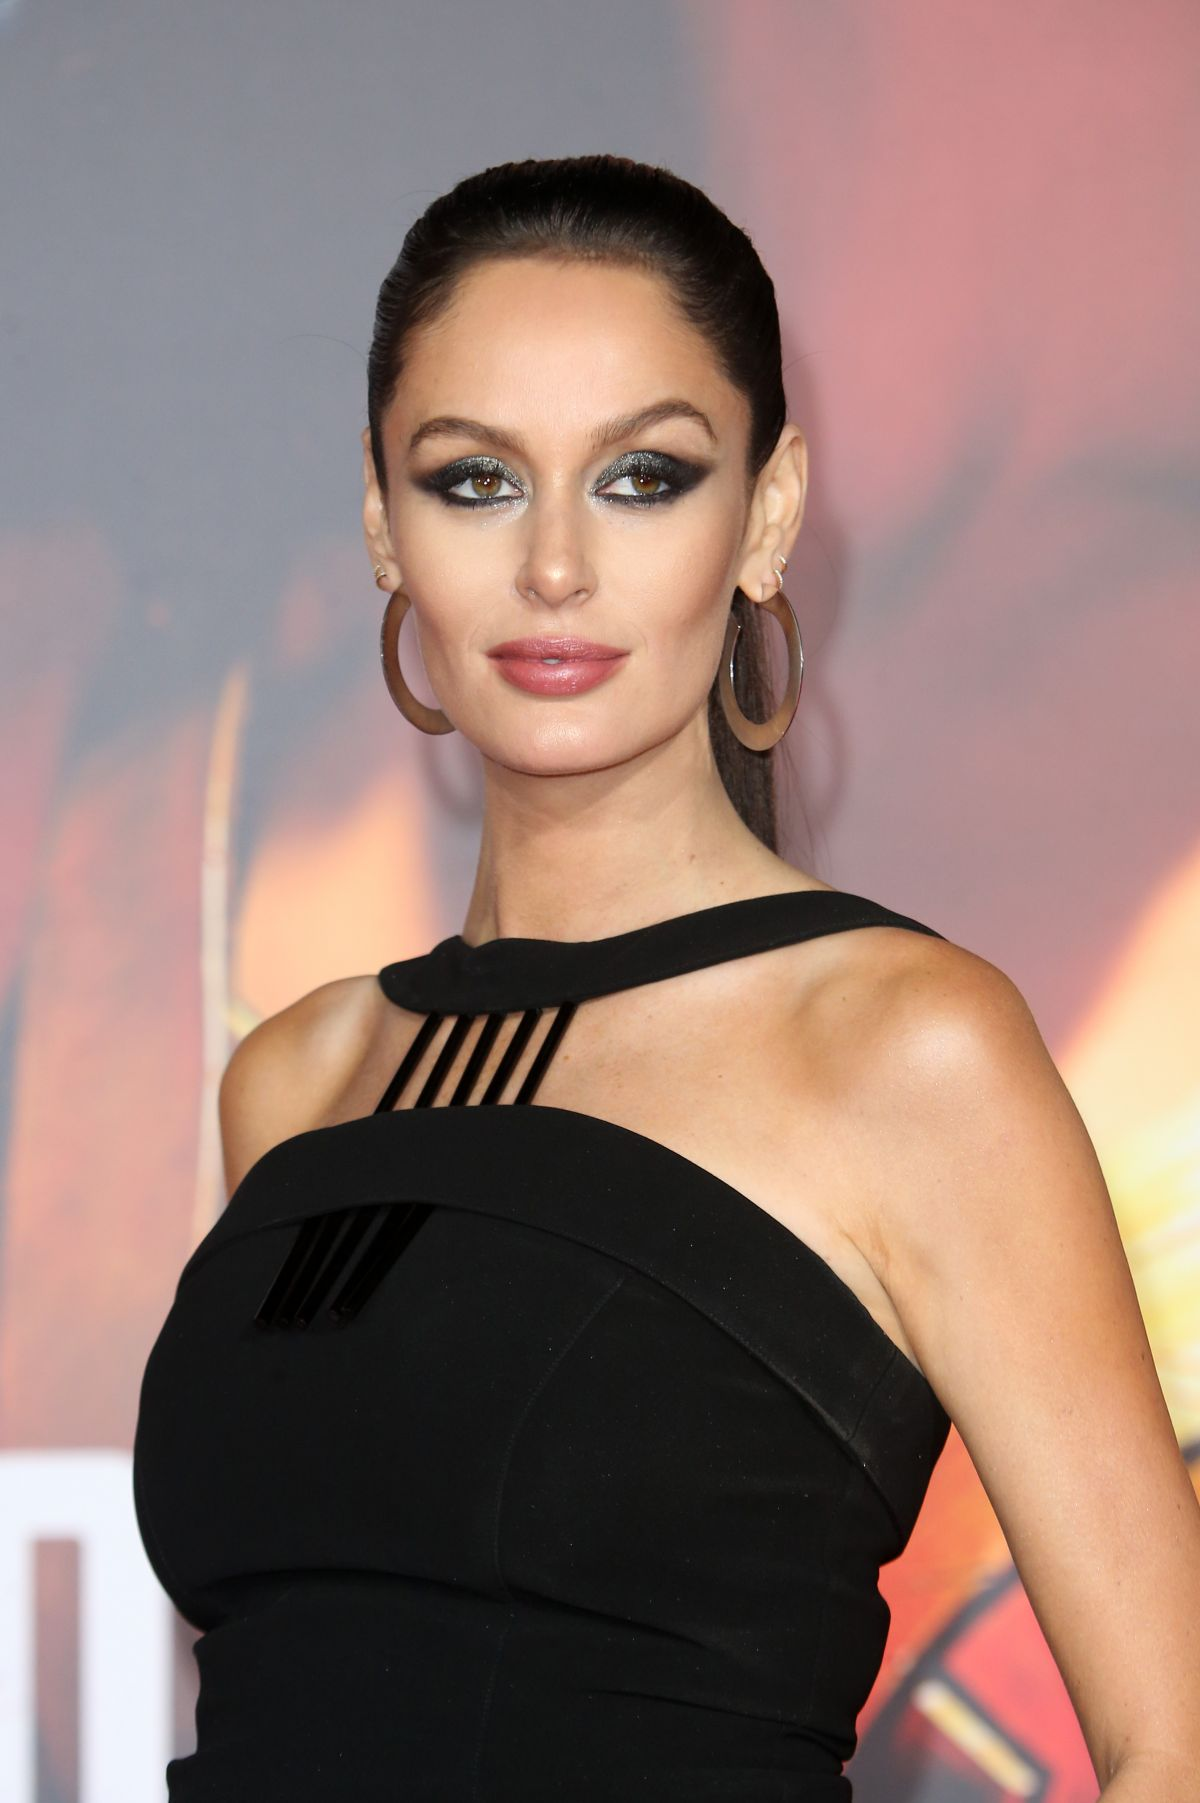 Images Nicole Trunfio nude (89 foto and video), Pussy, Fappening, Instagram, underwear 2015